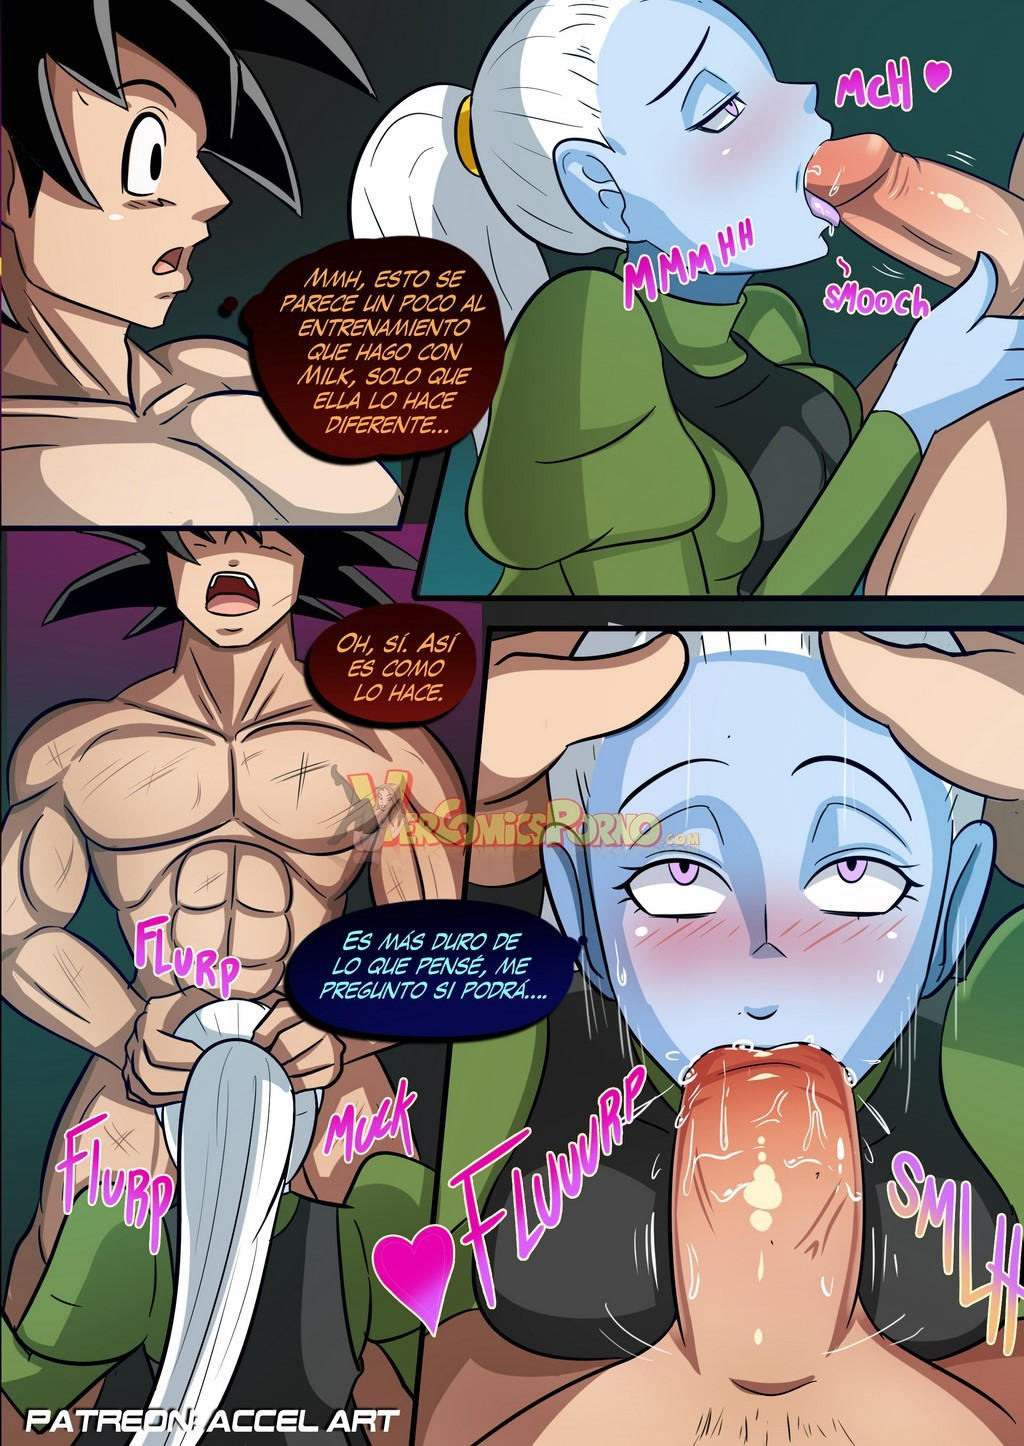 dbz sex comics